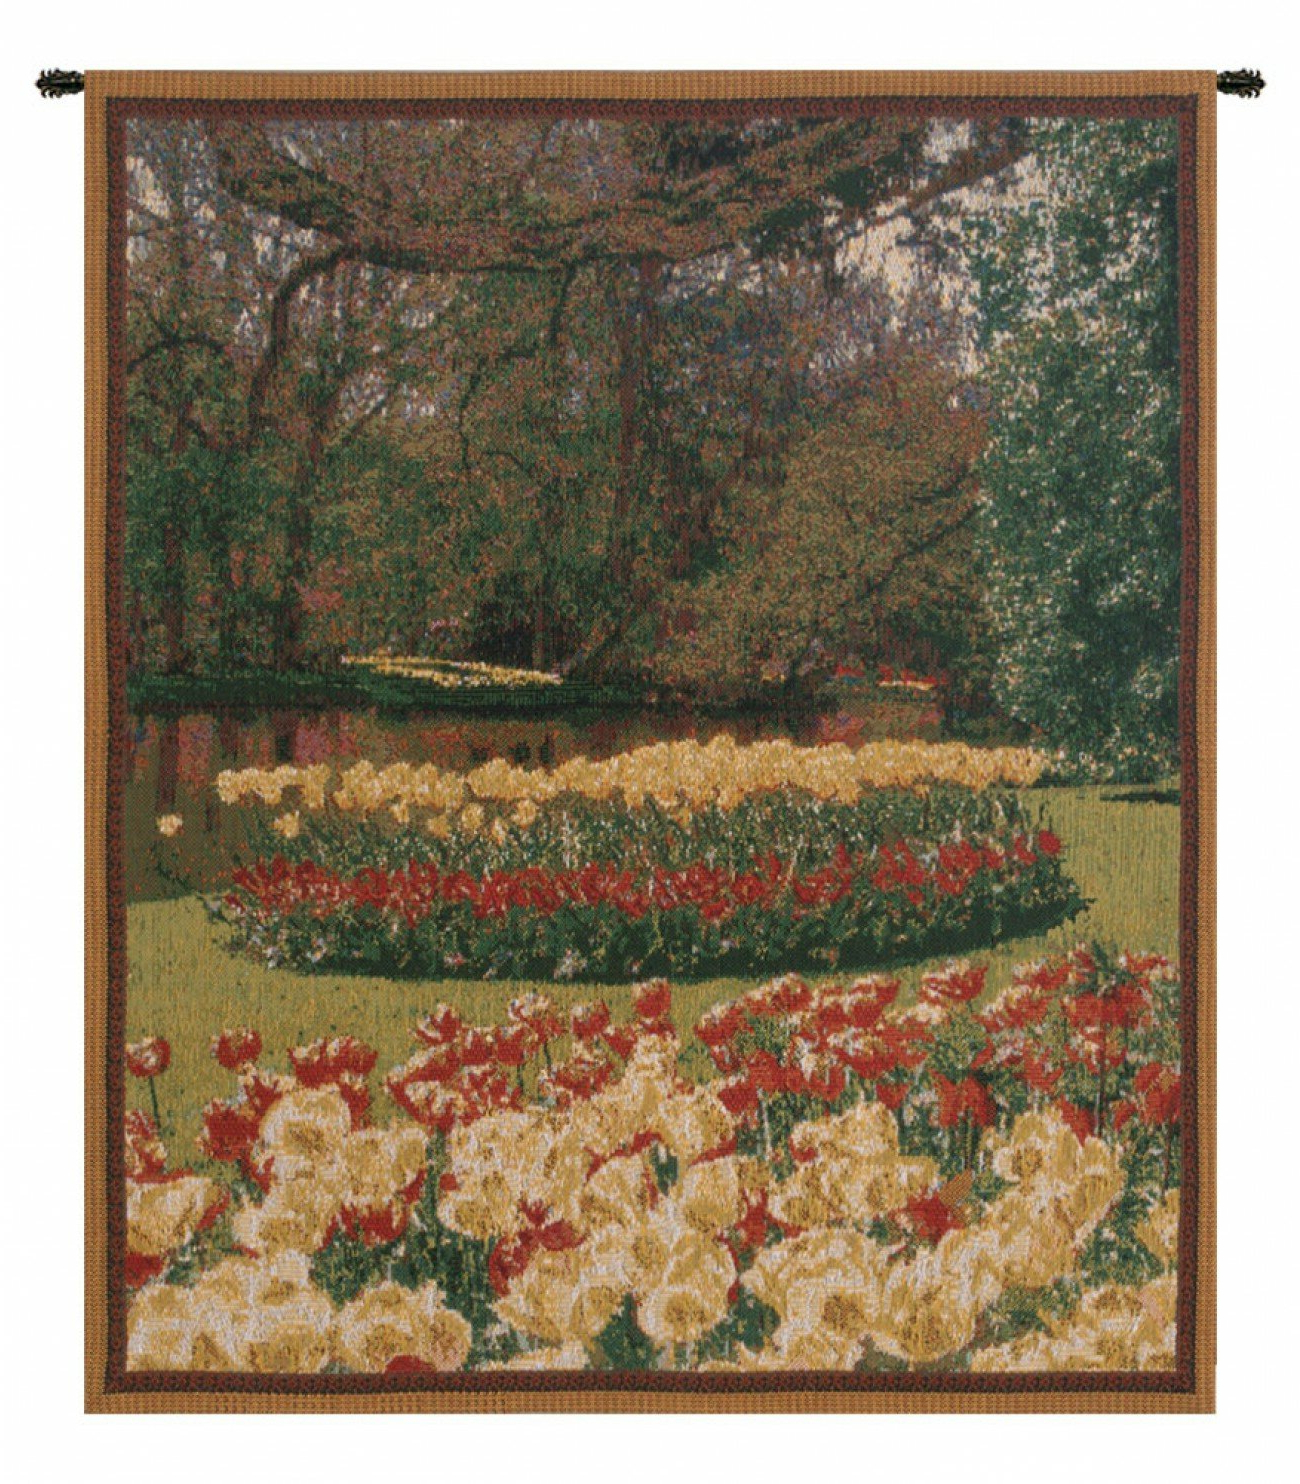 Keukenhof Ii, Mini Wall Hanging Regarding Well Known Blended Fabric Bellagio Scalinata Wall Hangings (View 11 of 20)